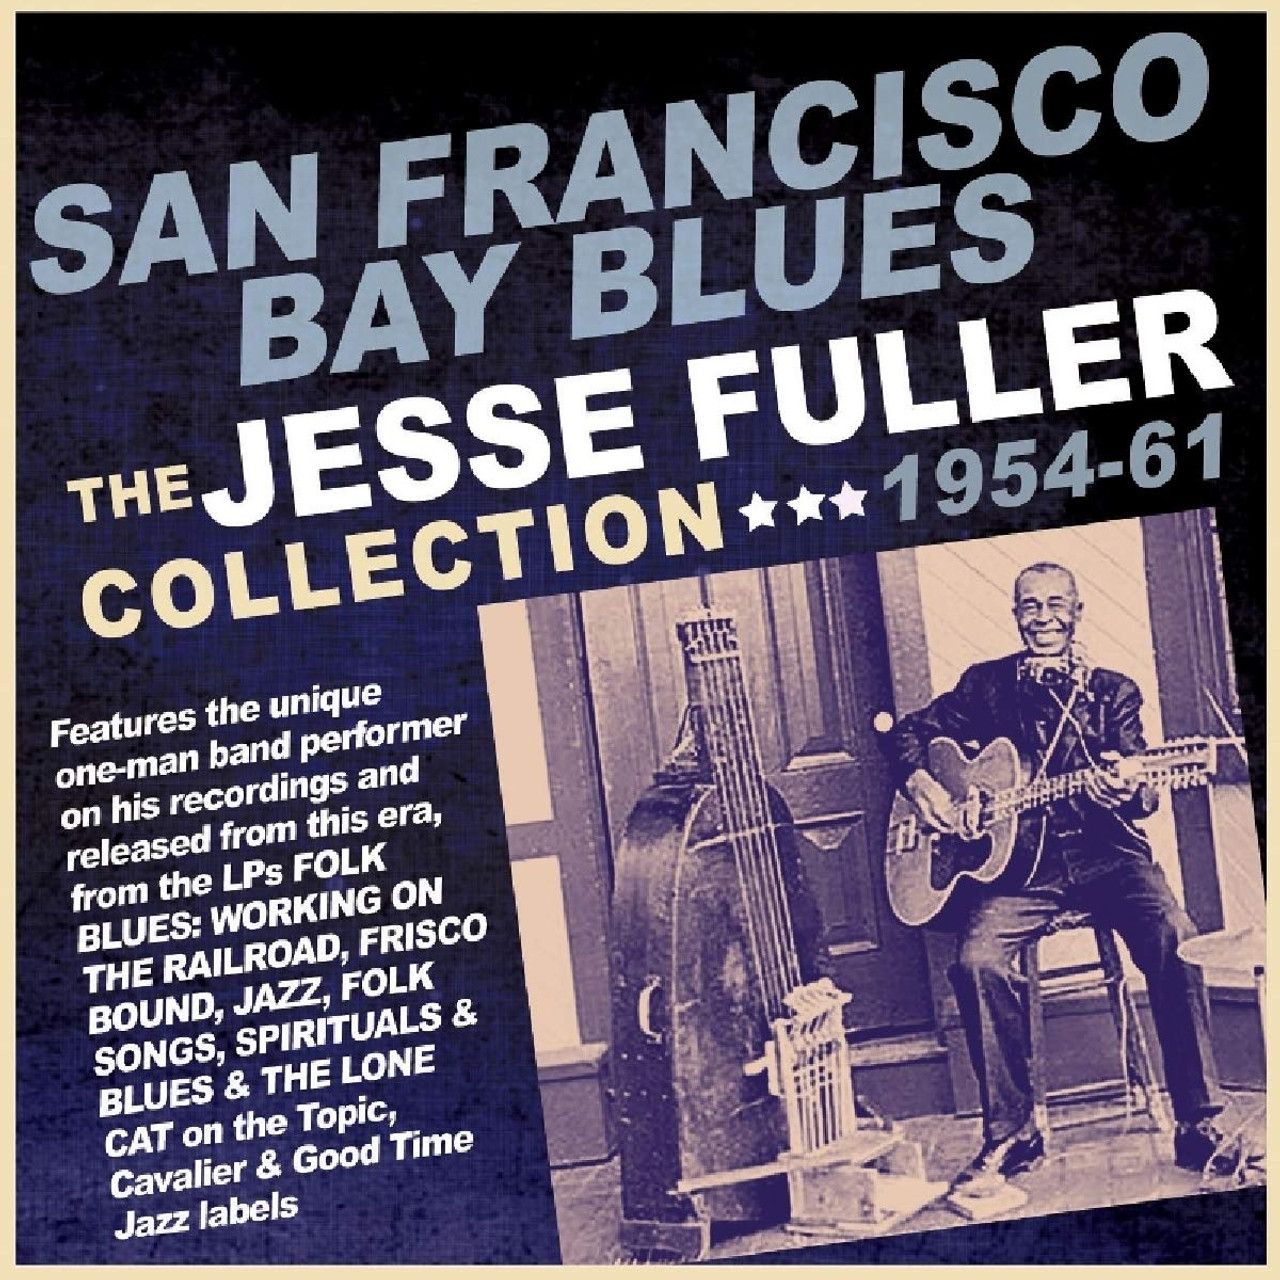 Jesse Fuller - San Francisco Bay Blues: Collection 1954-61 - 2 CD SET - 43 SONGS